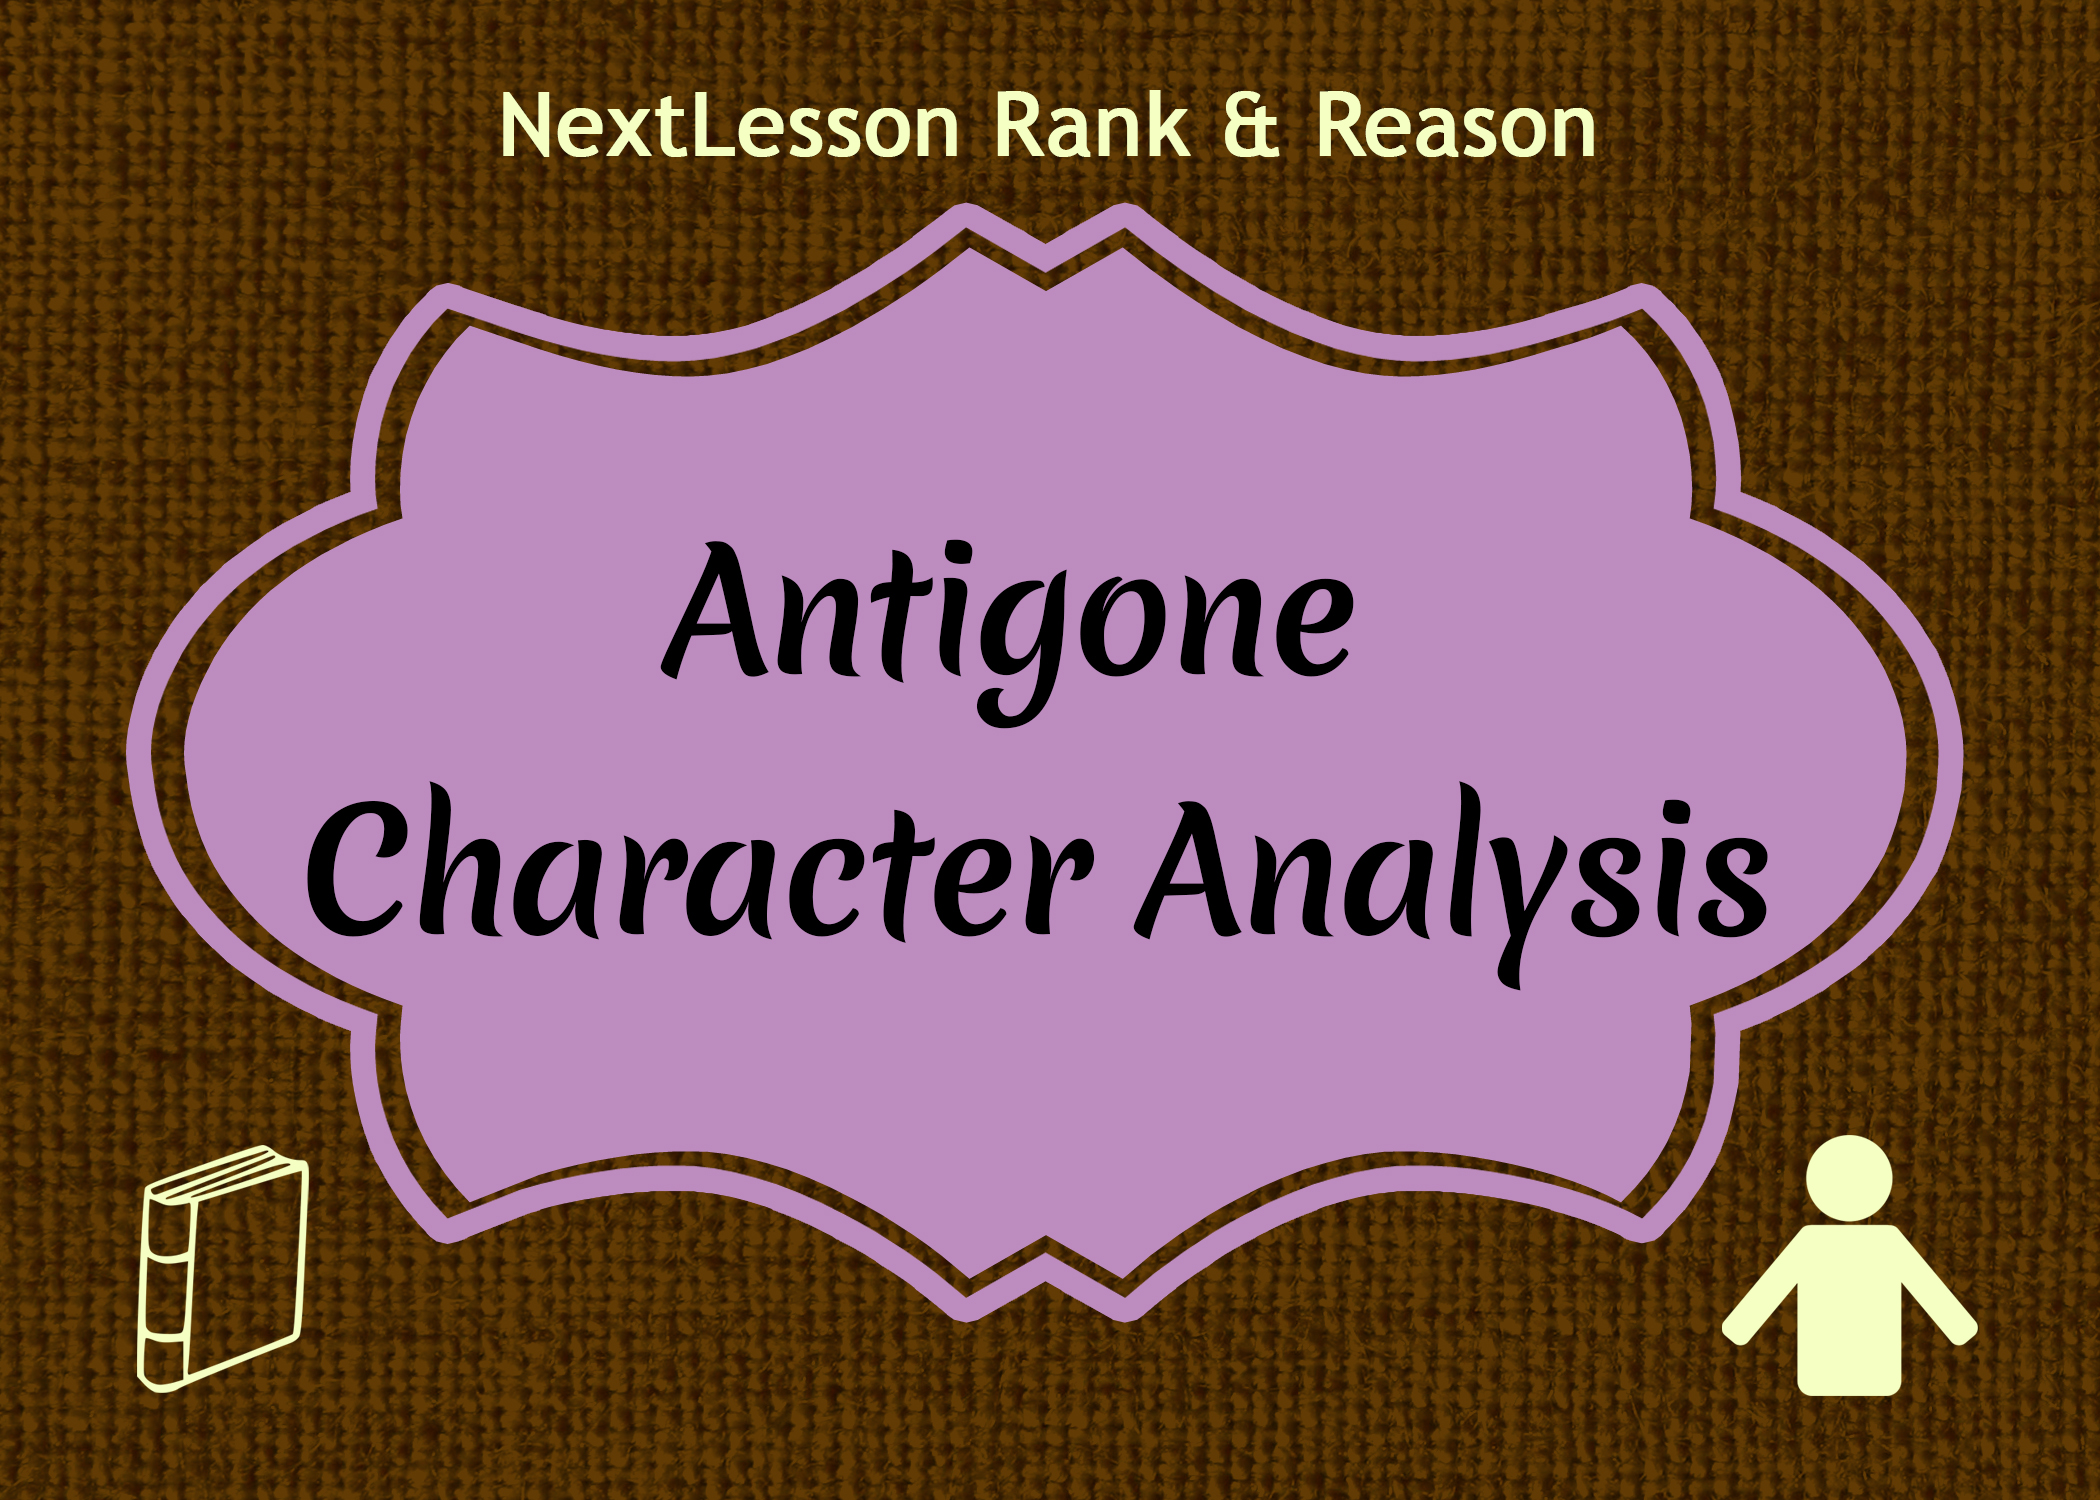 Antigone analysis essay